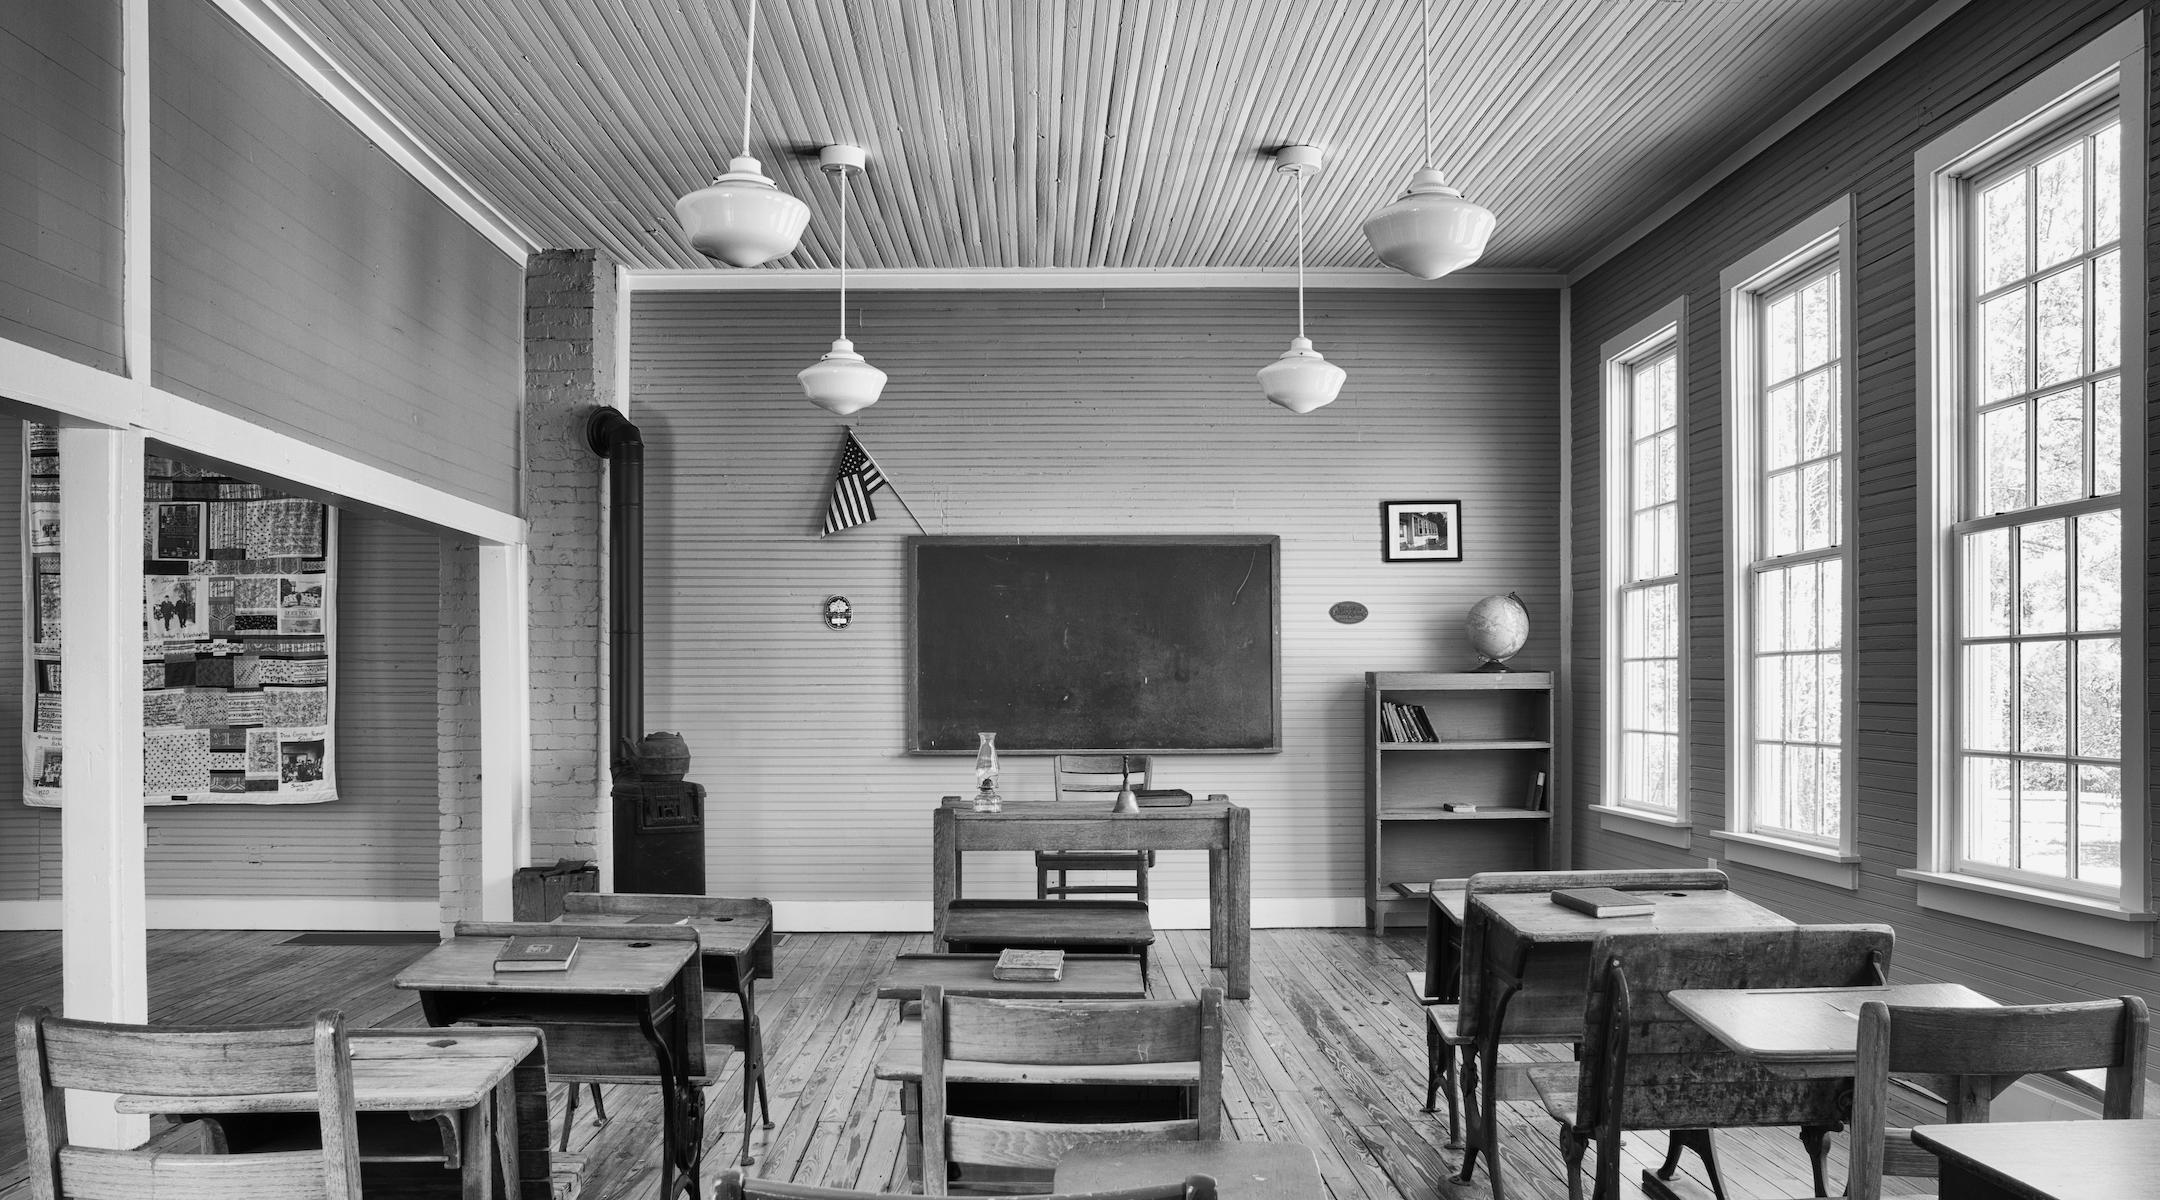 One Jewish photographer's mission to preserve the legacy of the Rosenwald schools